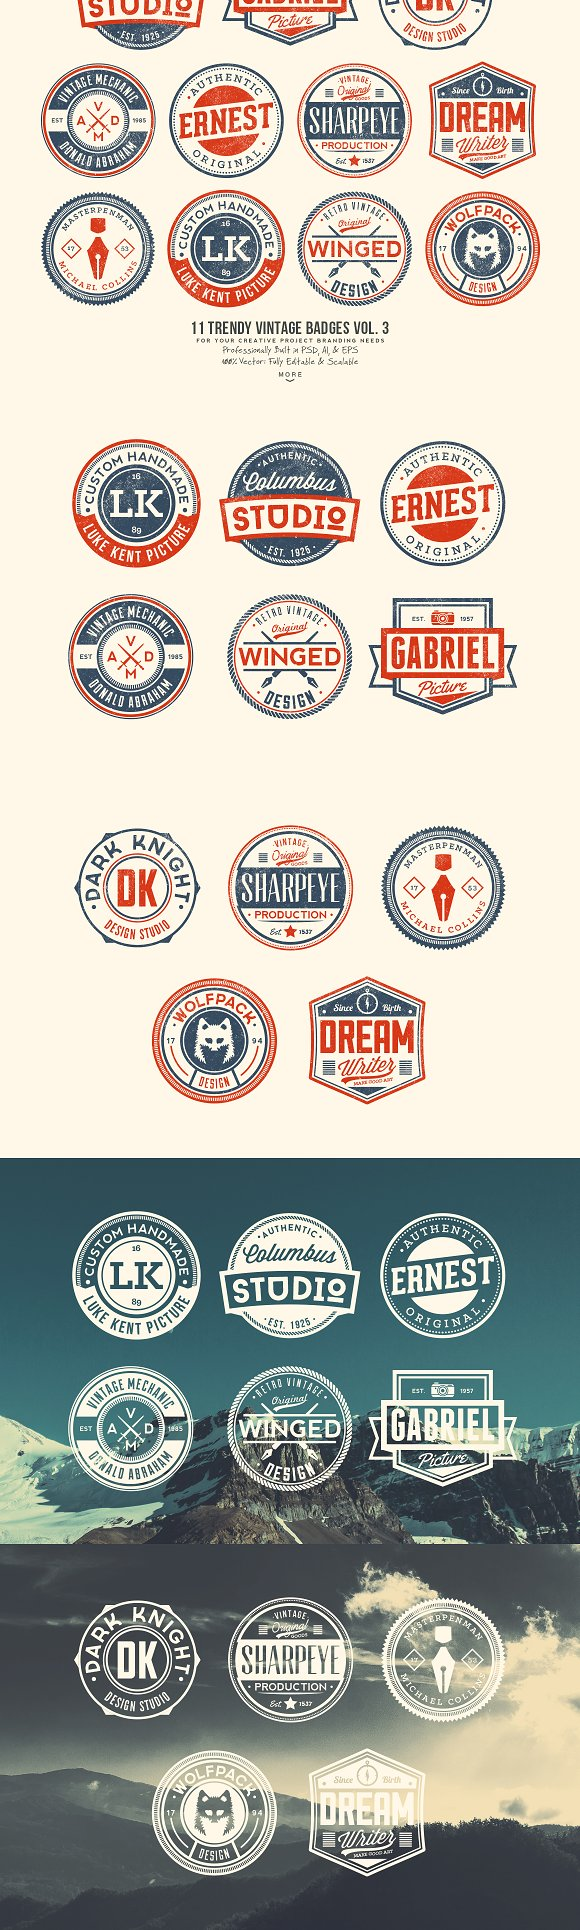 33 Trendy Vintage Badges Bundle Pack in Logo Templates - product preview 3